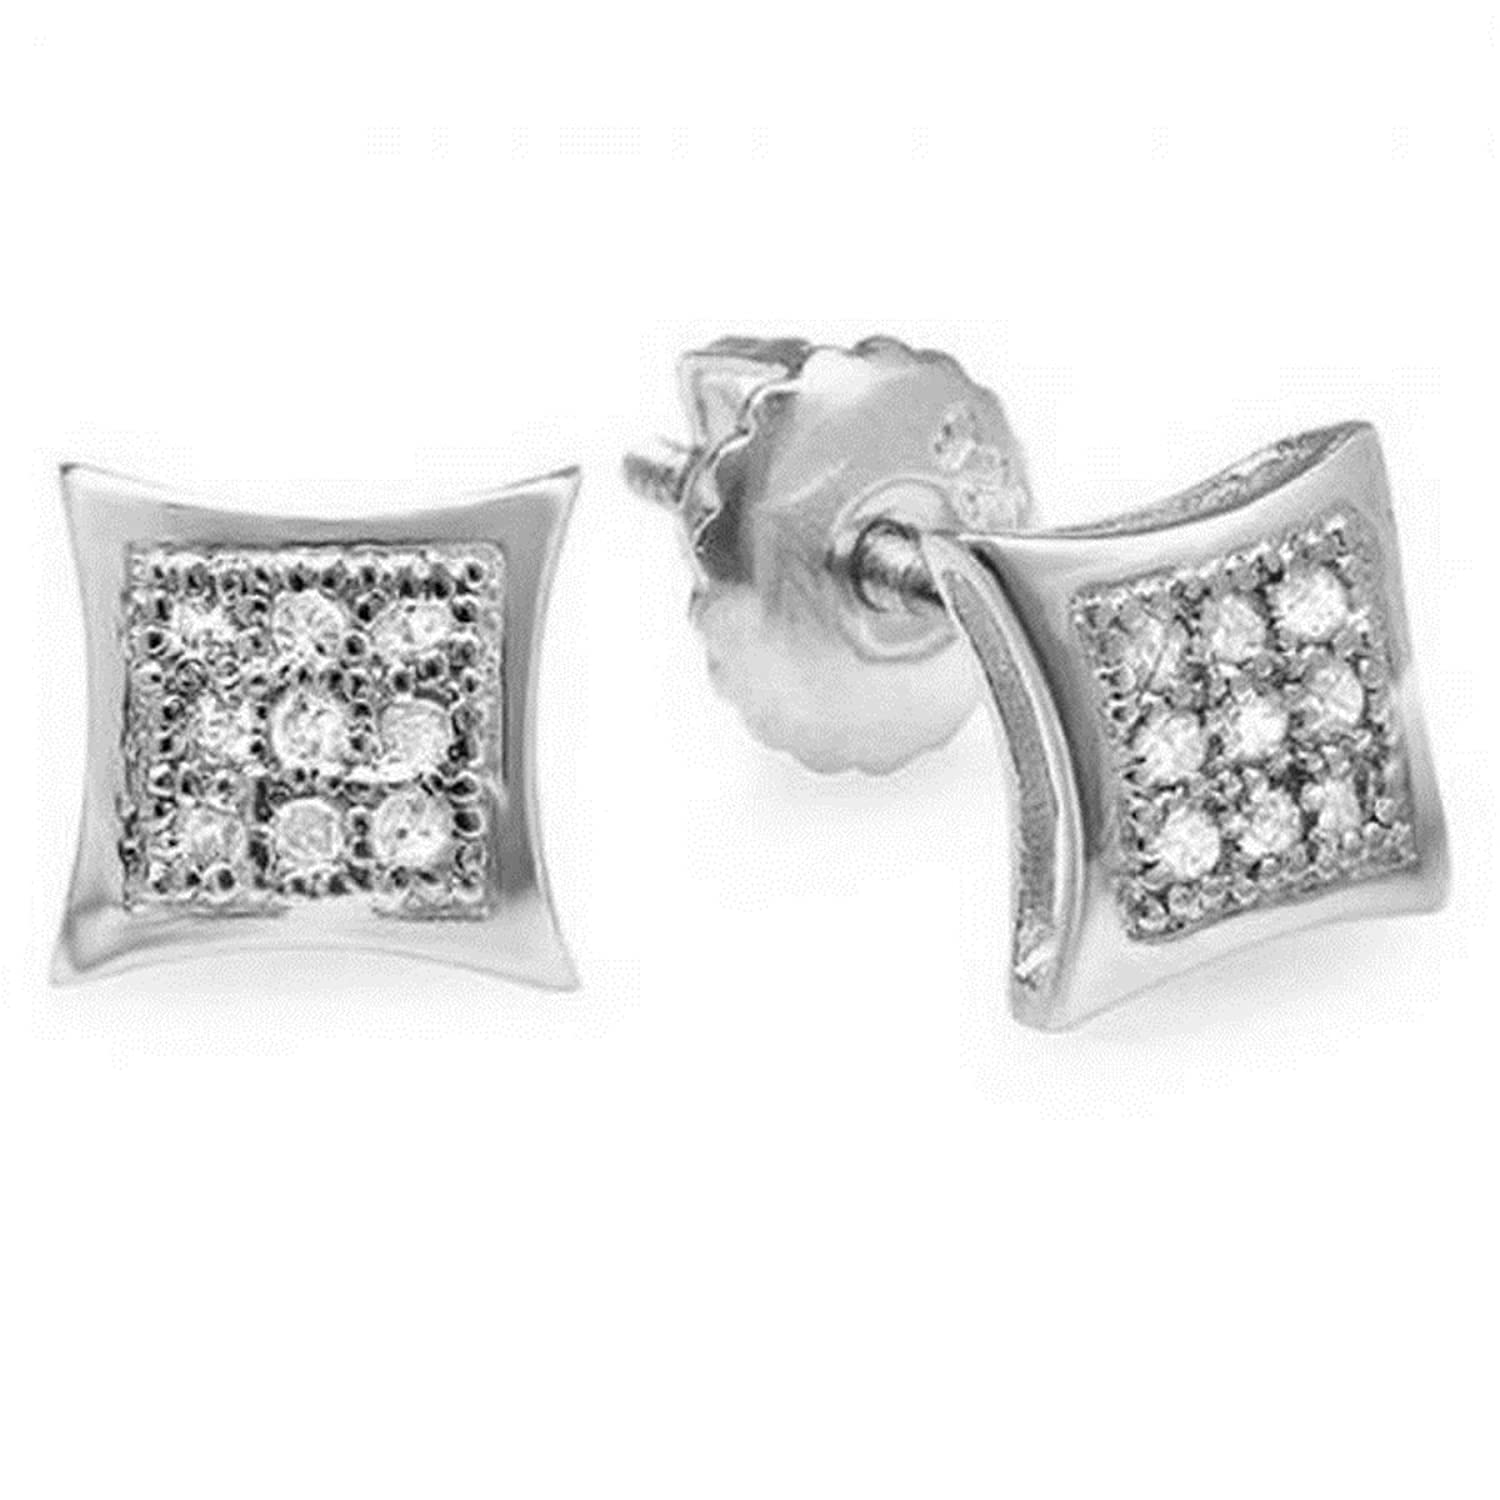 0.08 (Ctw) 10K White Gold Round Cut Diamond Men's Hip Hop Kite Shape Stud Earrings